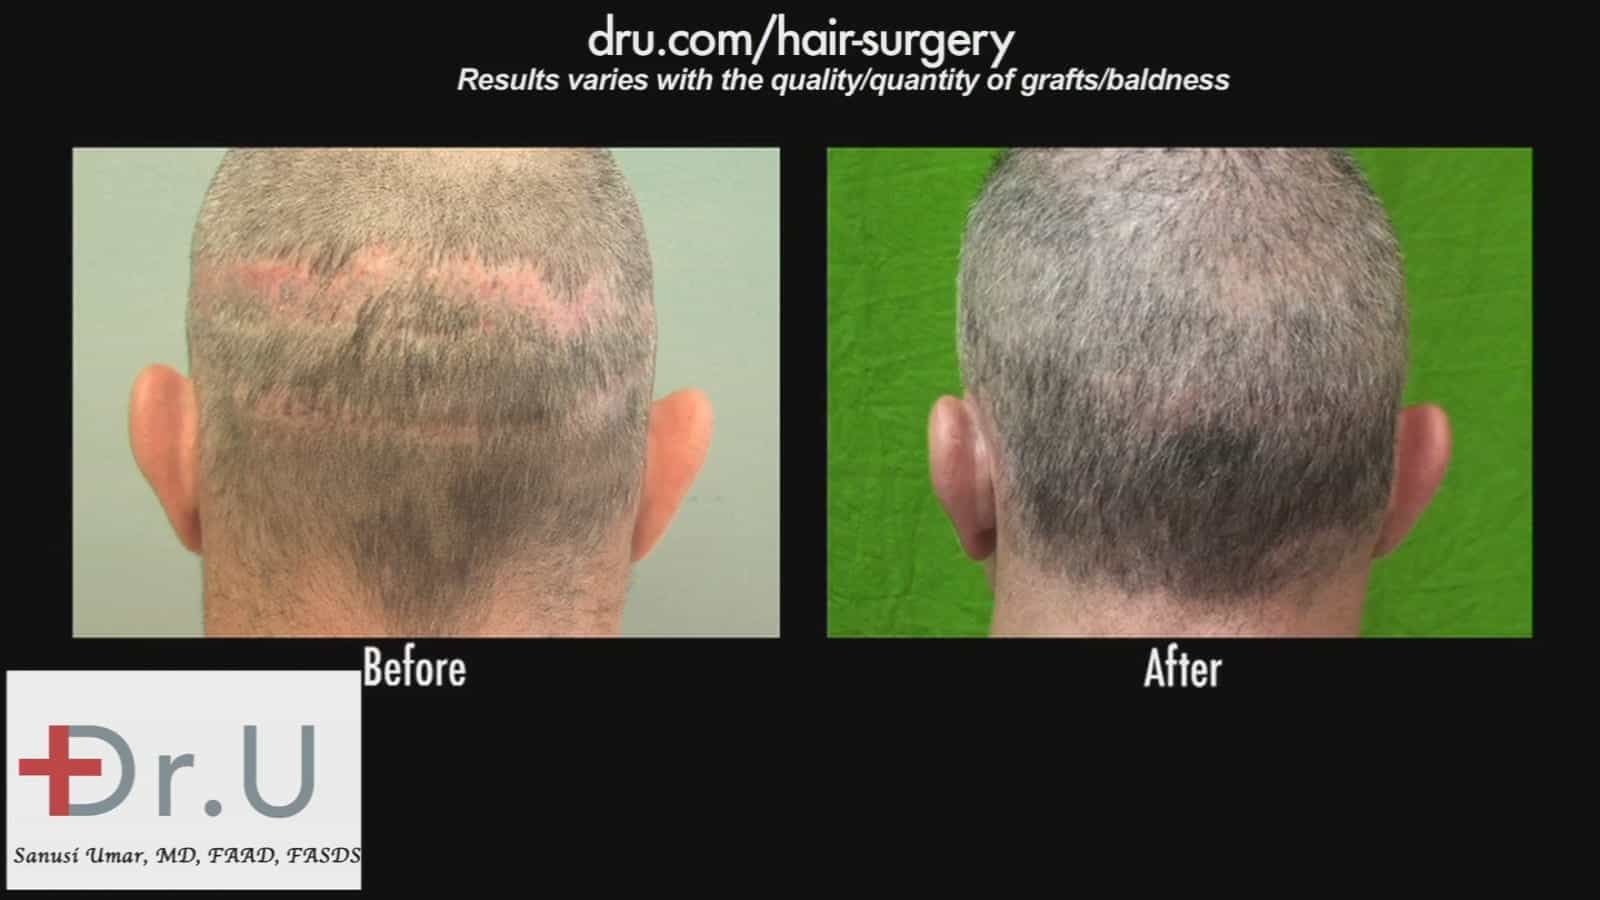 FUT (Follicular Unit Transfer) - also known as Follicular Unit Extraction - Used for strip scar repair